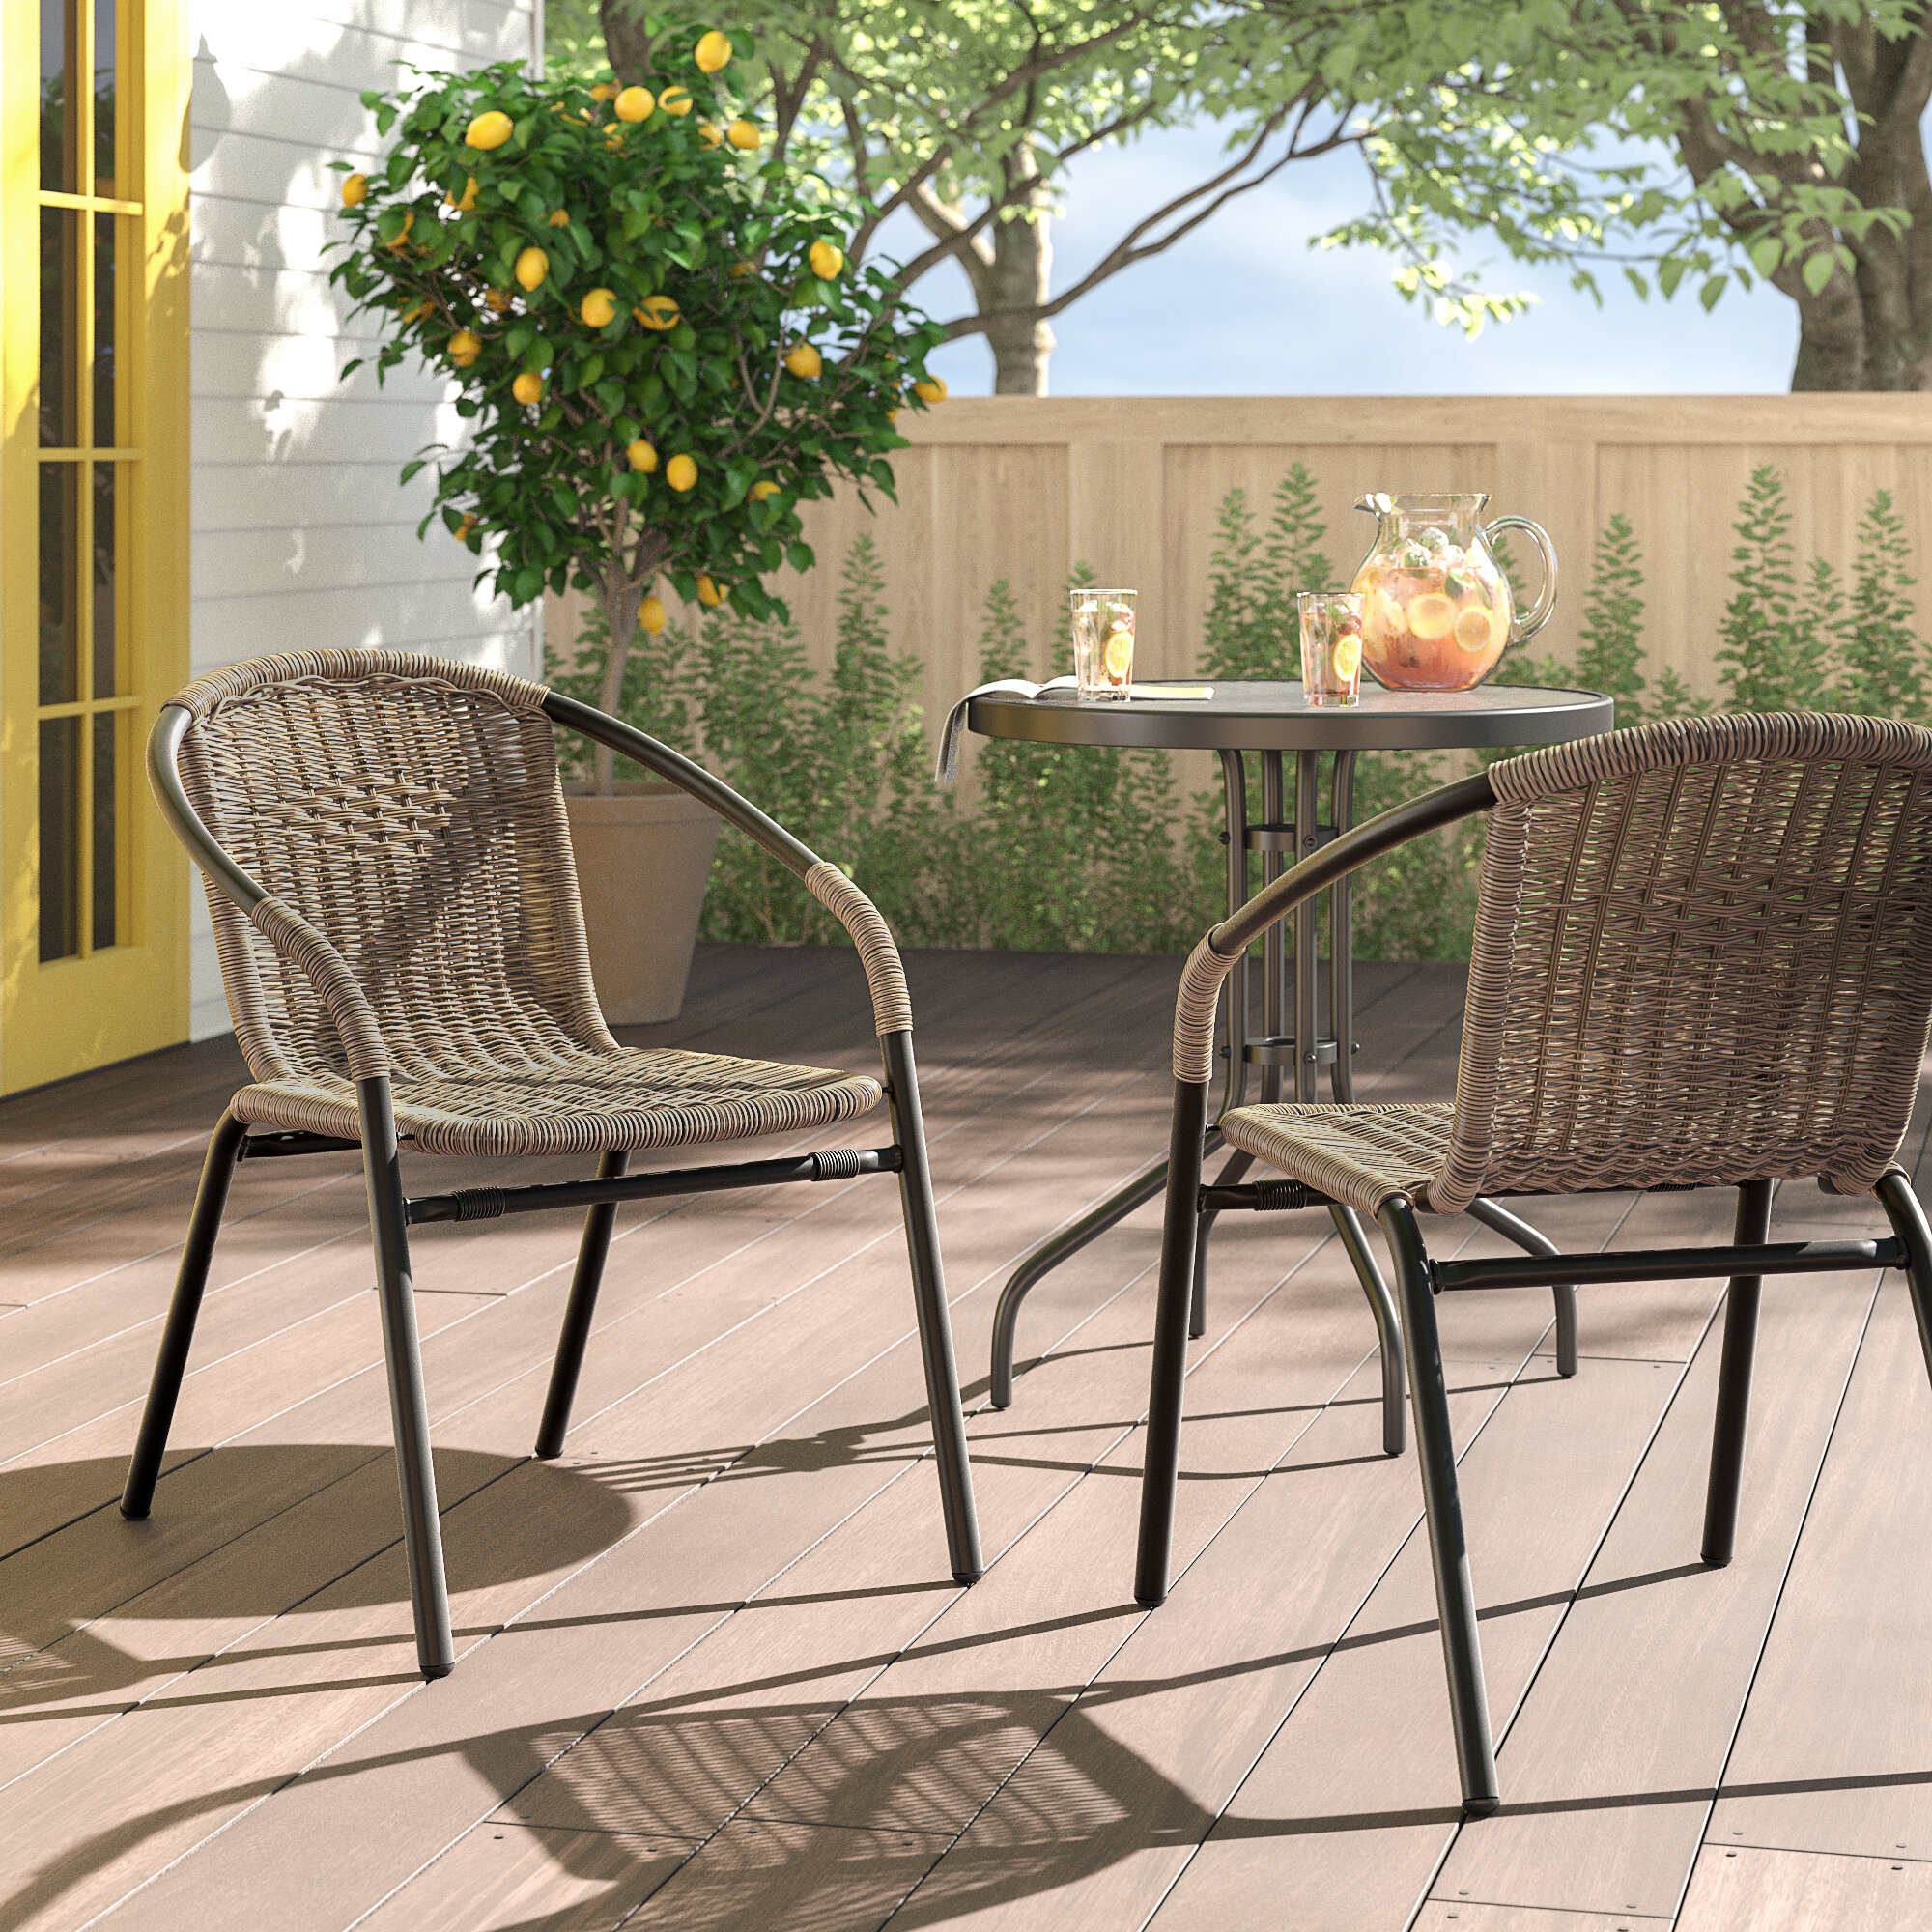 YU YUSING Outdoor Dining Chairs Set of 2,Patio Dining Chairs,Cast Aluminum Metal Arm Chairs for Kitchen,Garden,Backyard